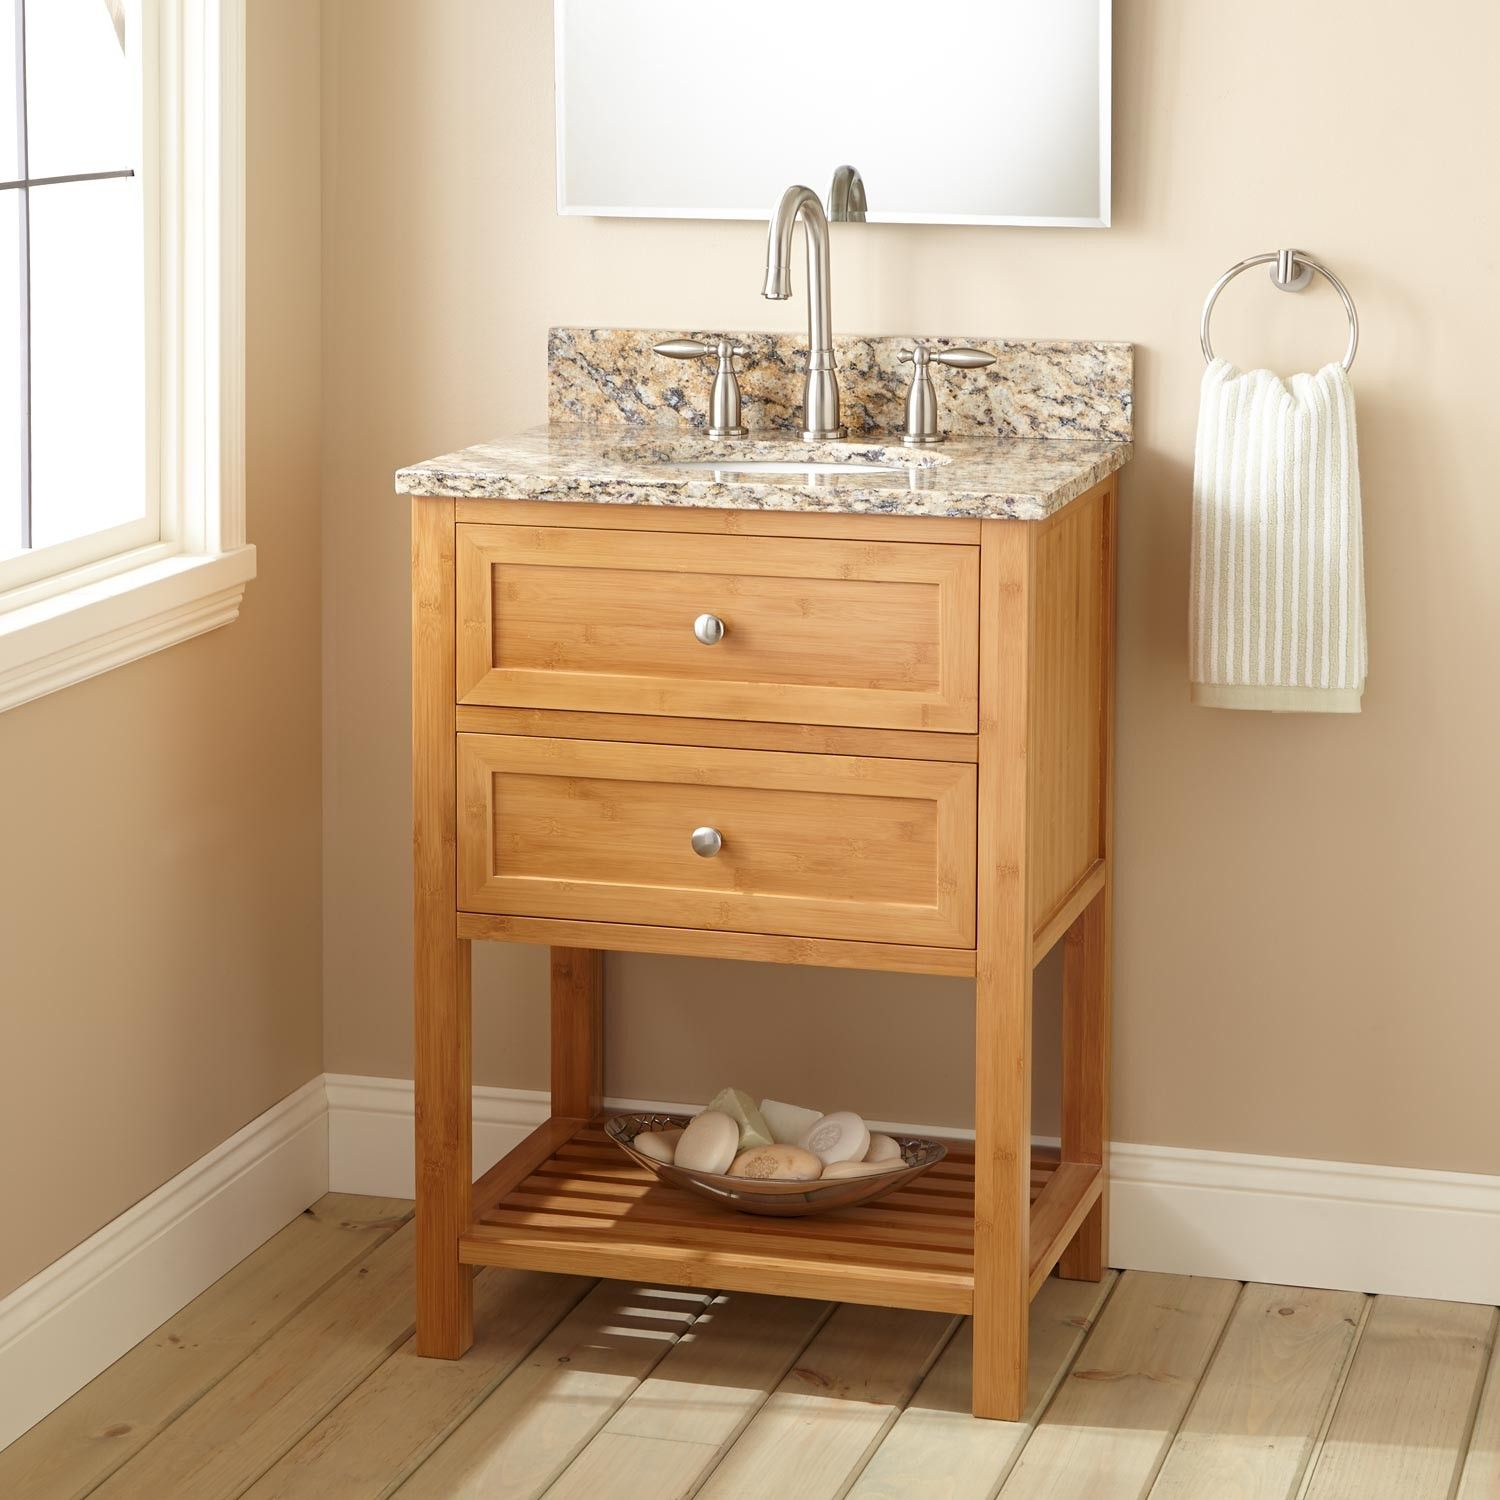 "24"" Narrow Depth Taren Bamboo Vanity For Undermount Sink Impressive Narrow Depth Bathroom Vanity Design Inspiration"